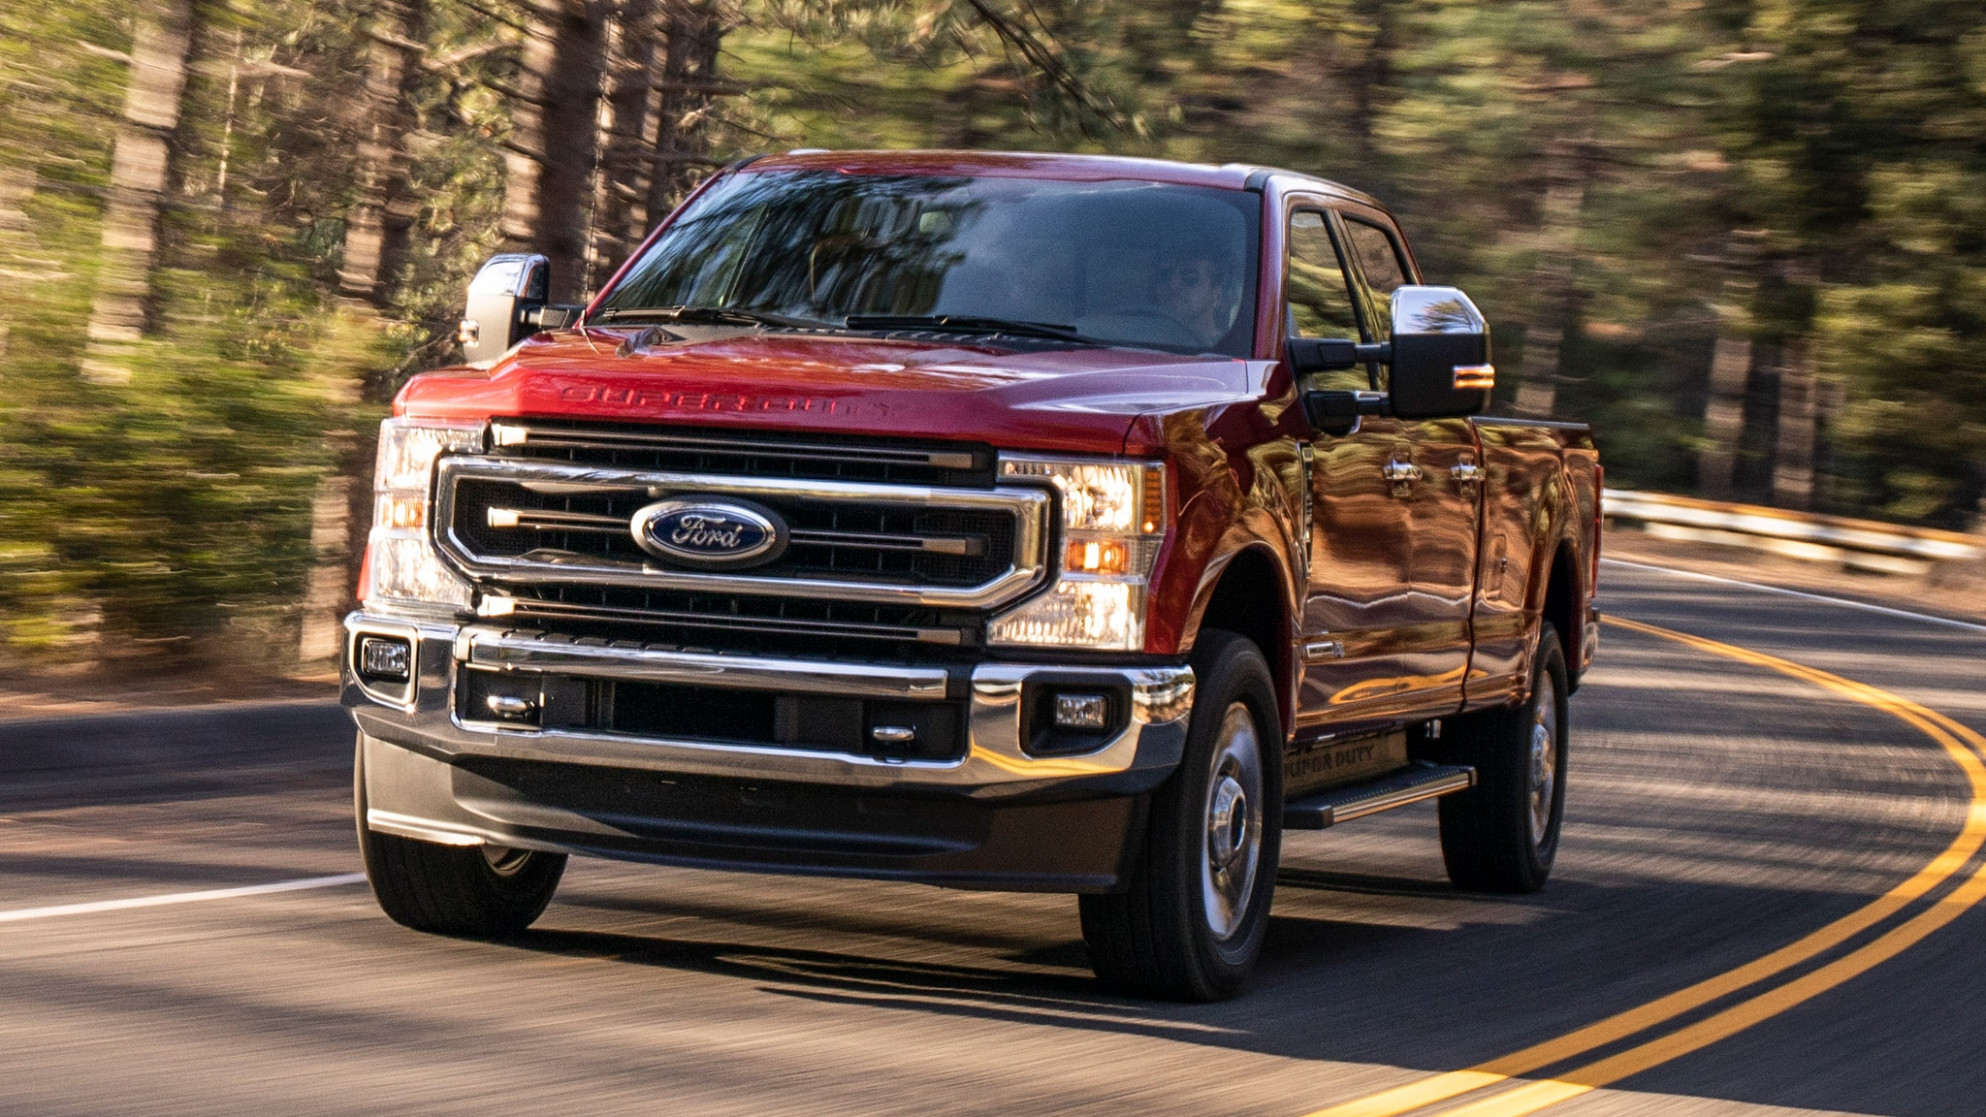 8 Ford F-Series Super Duty First Look: Super is as Super Does